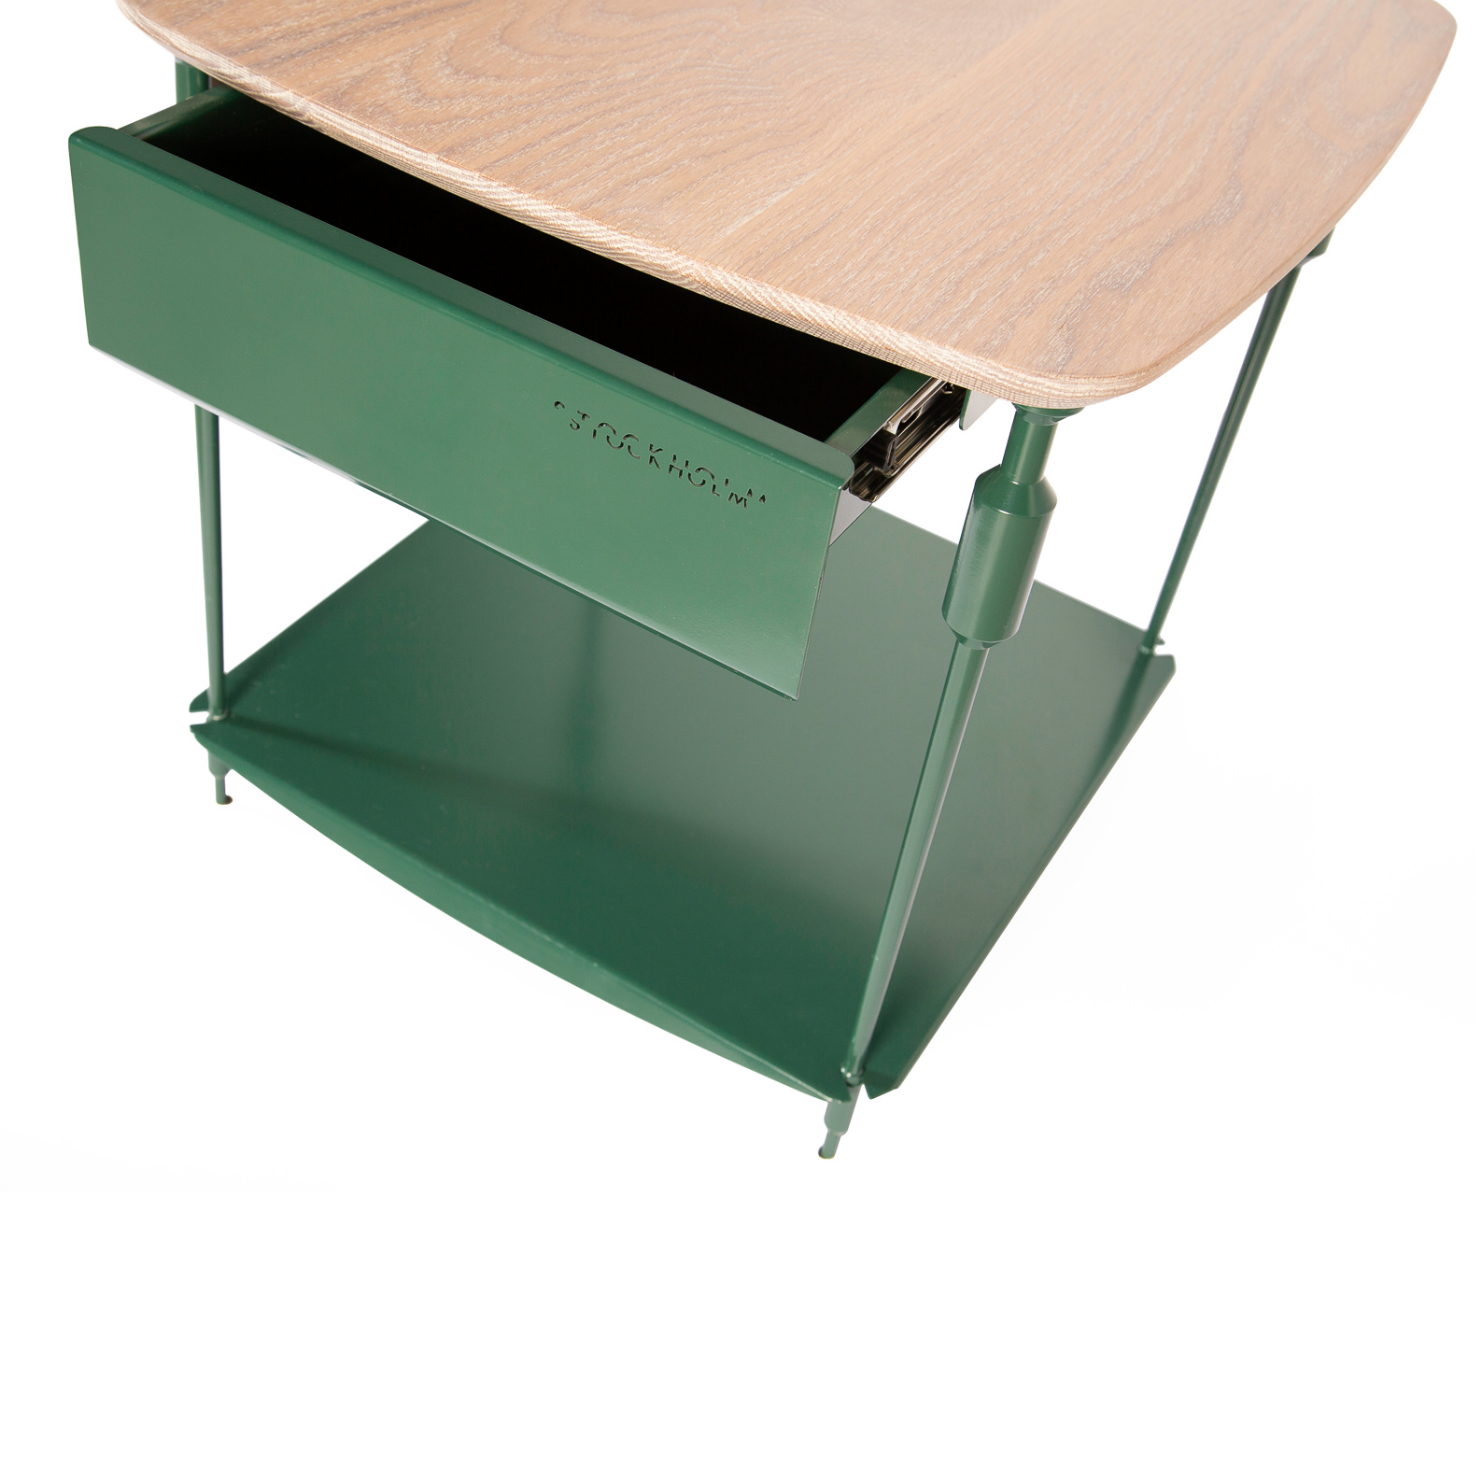 Stockholm Bedside Table - Emerald Green